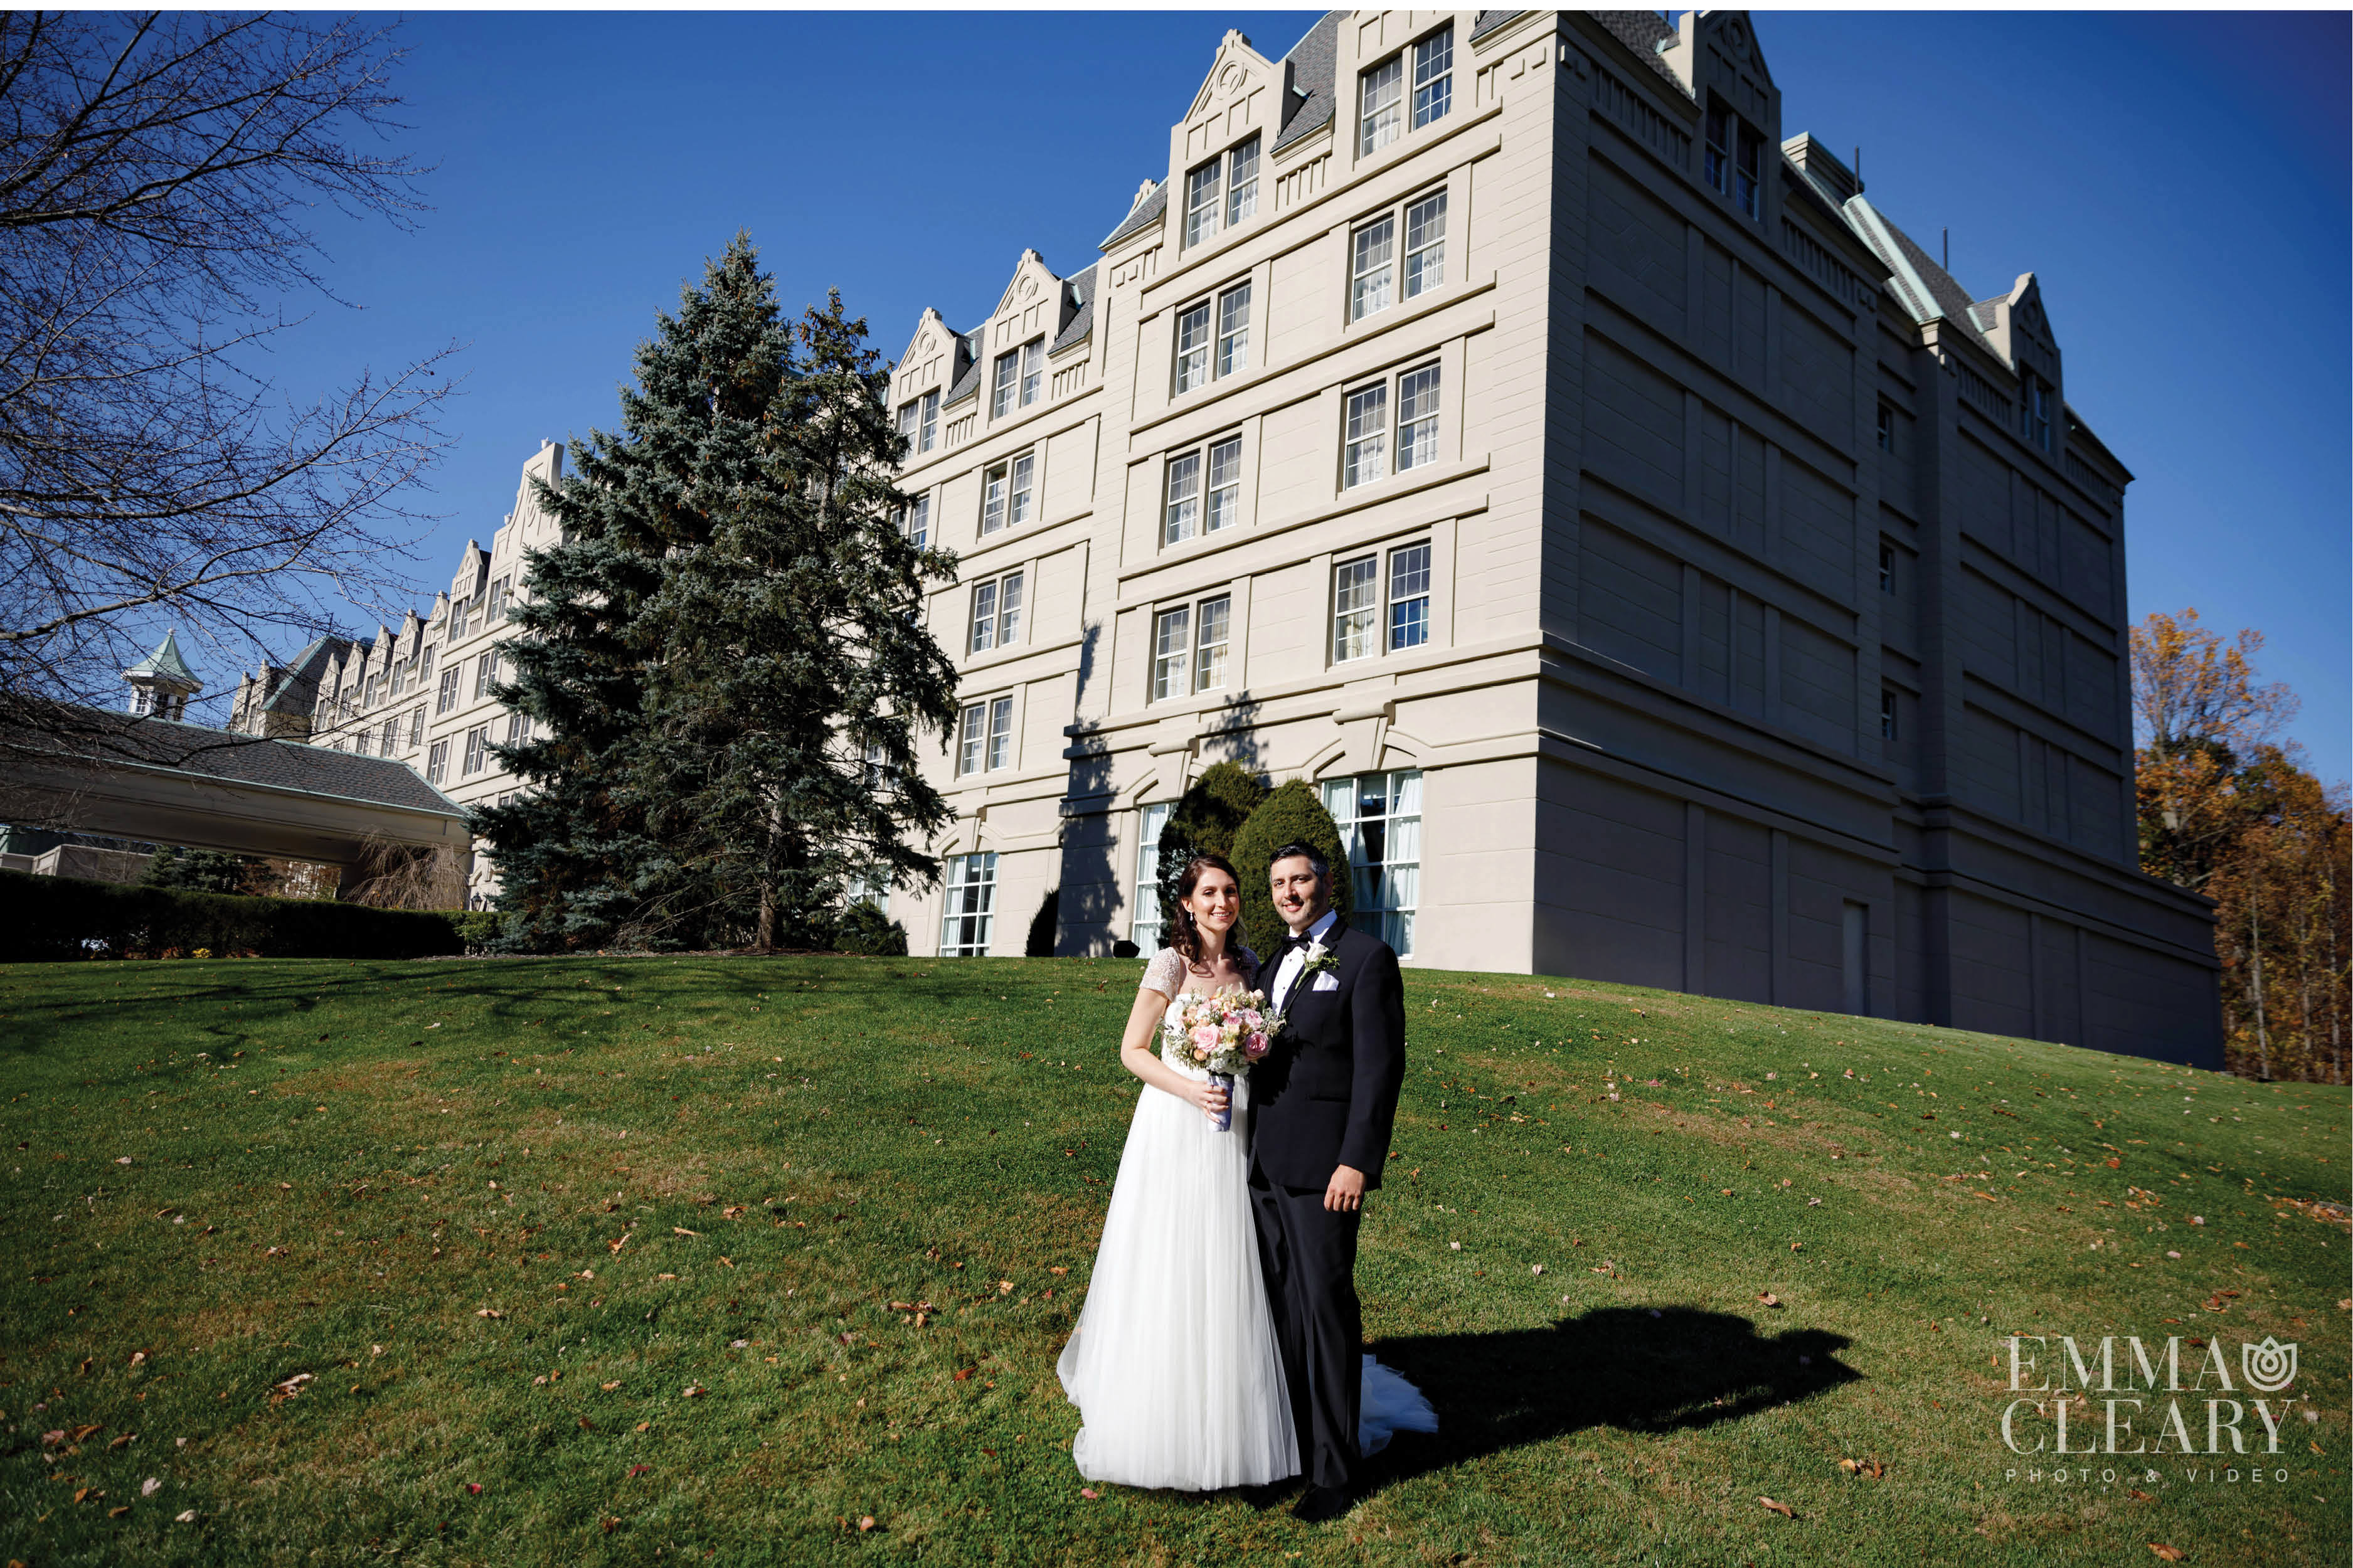 Emma_cleary_photography Hilton pearl river NY wedding15